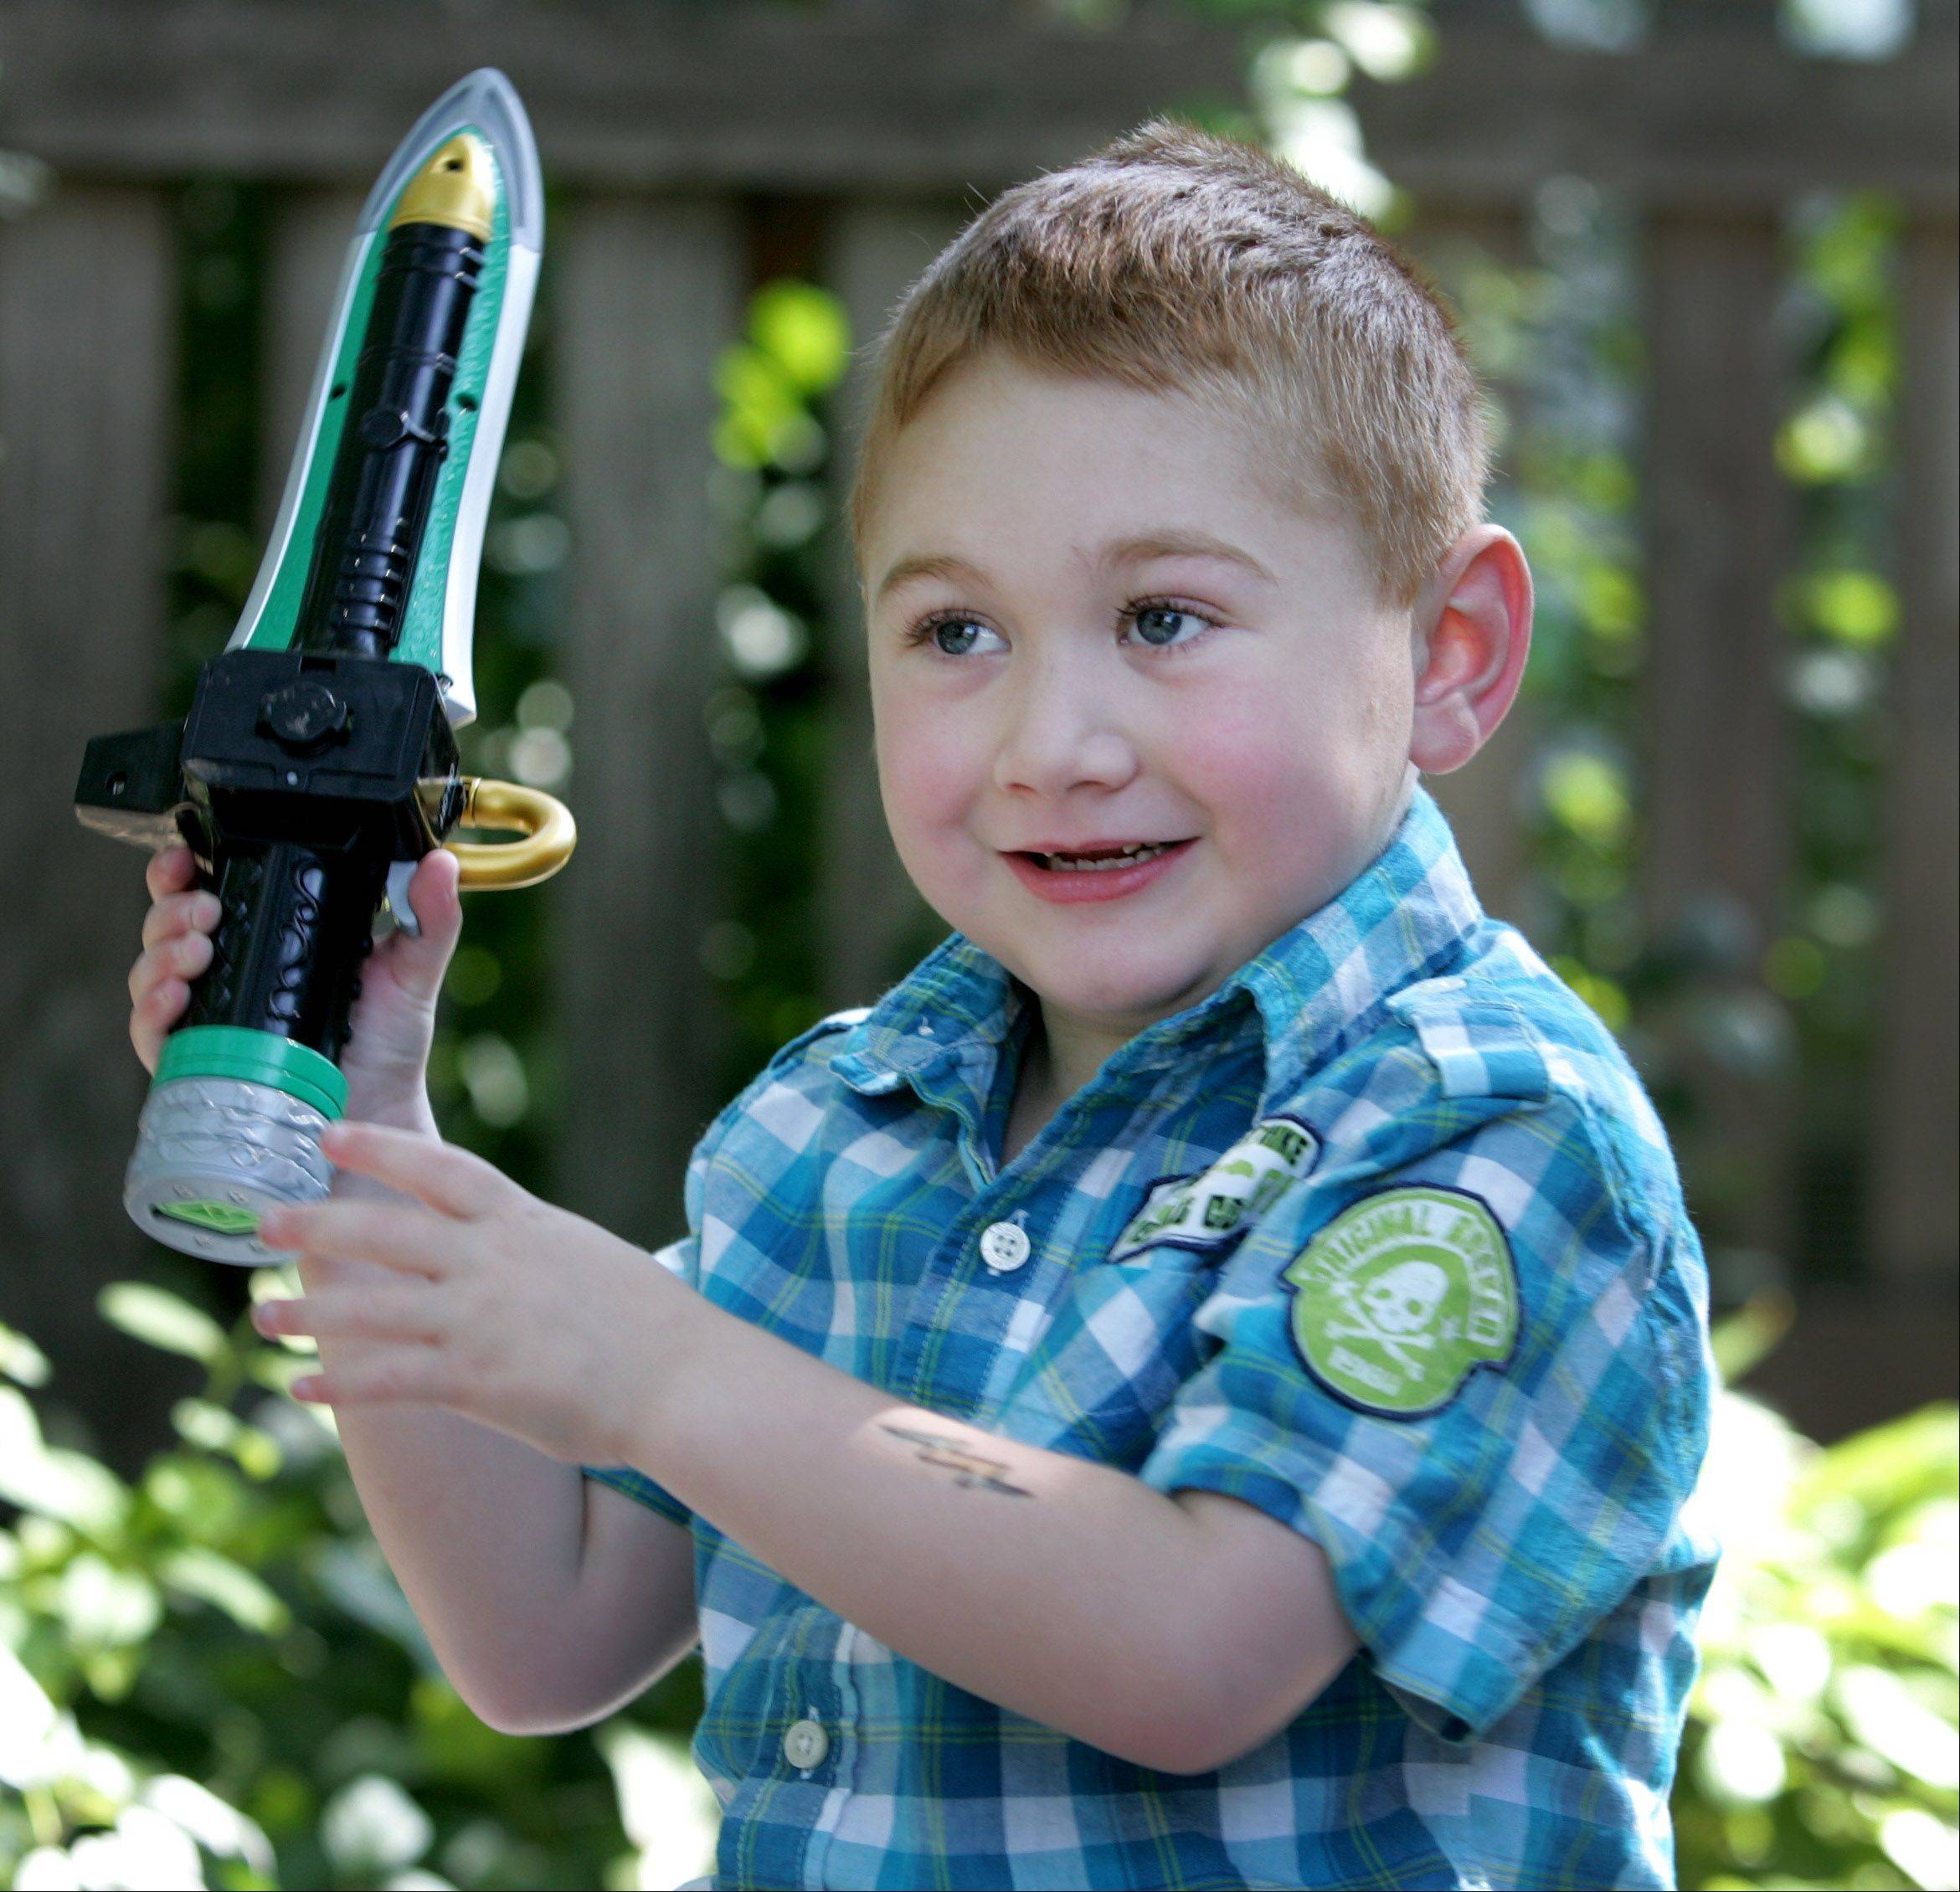 Playing with light sabers and applying temporary tattoos, like the lightning bolt on his arm, has all been part of the fun for 5-year-old heart transplant recipient Tim Grobart of Lombard since returning home from the hospital July 26.